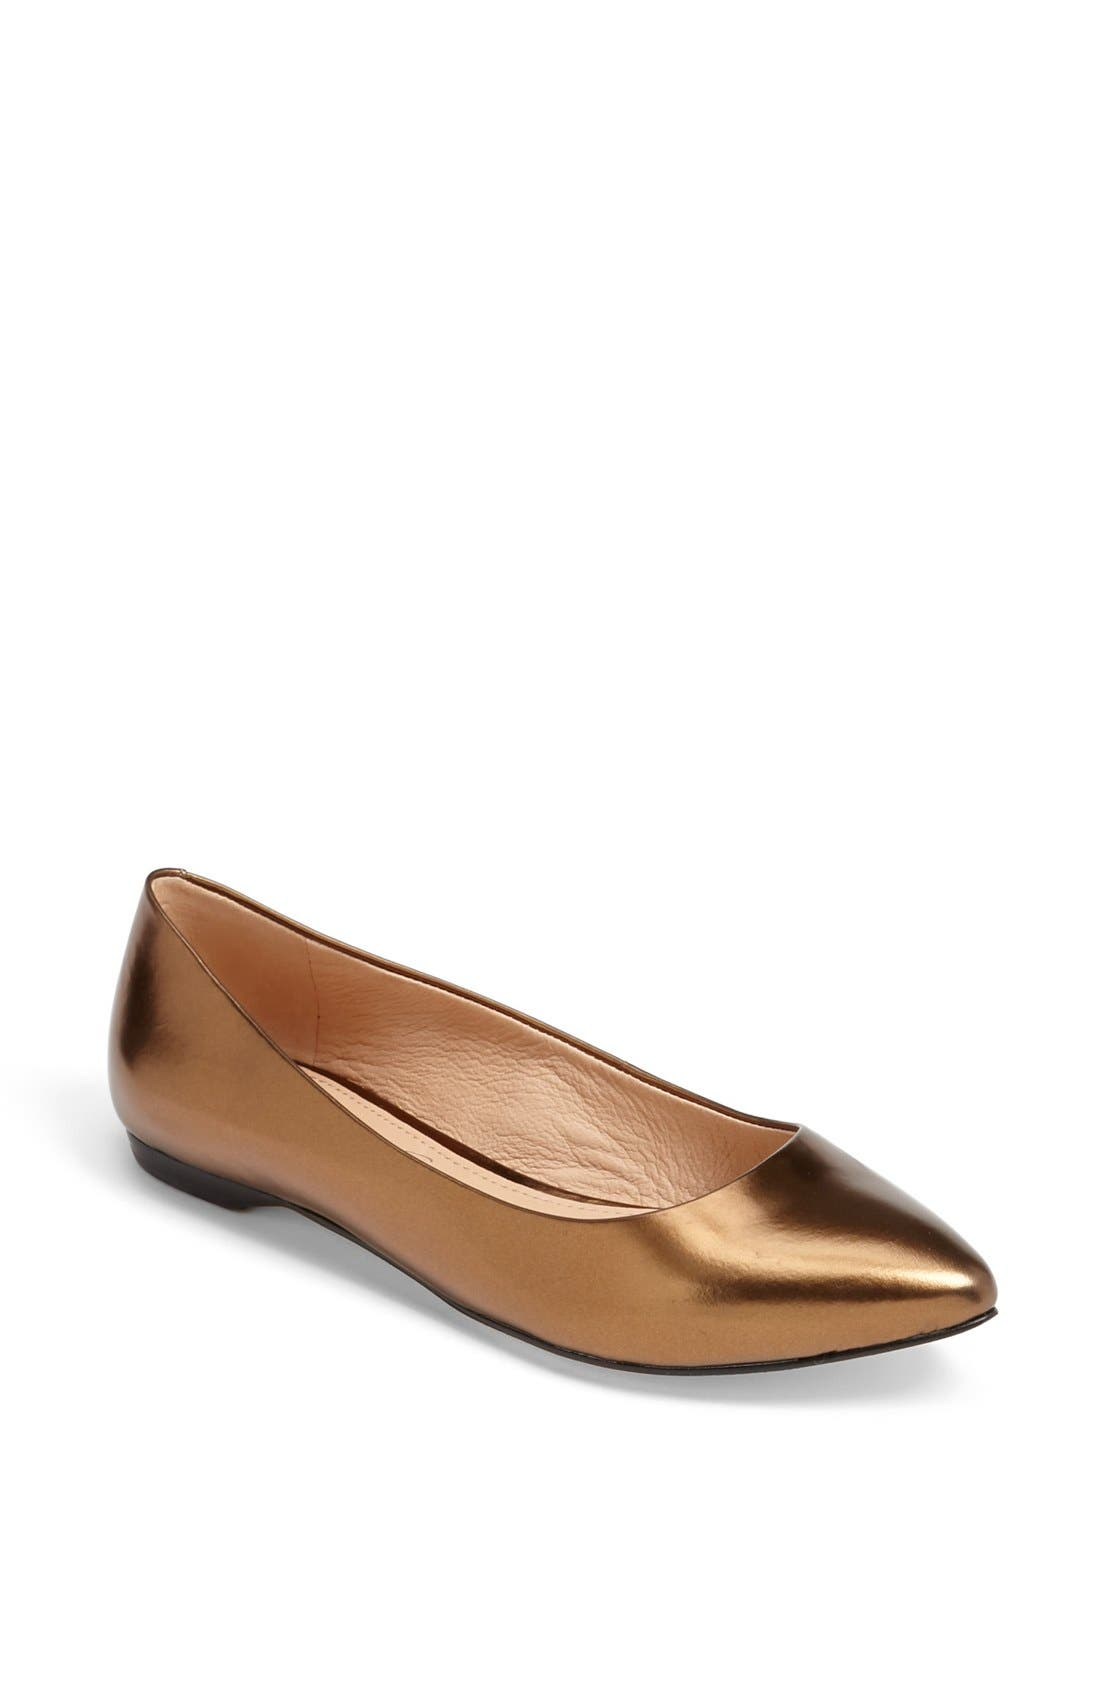 Alternate Image 1 Selected - Kenneth Cole New York 'Take Chances' Flat